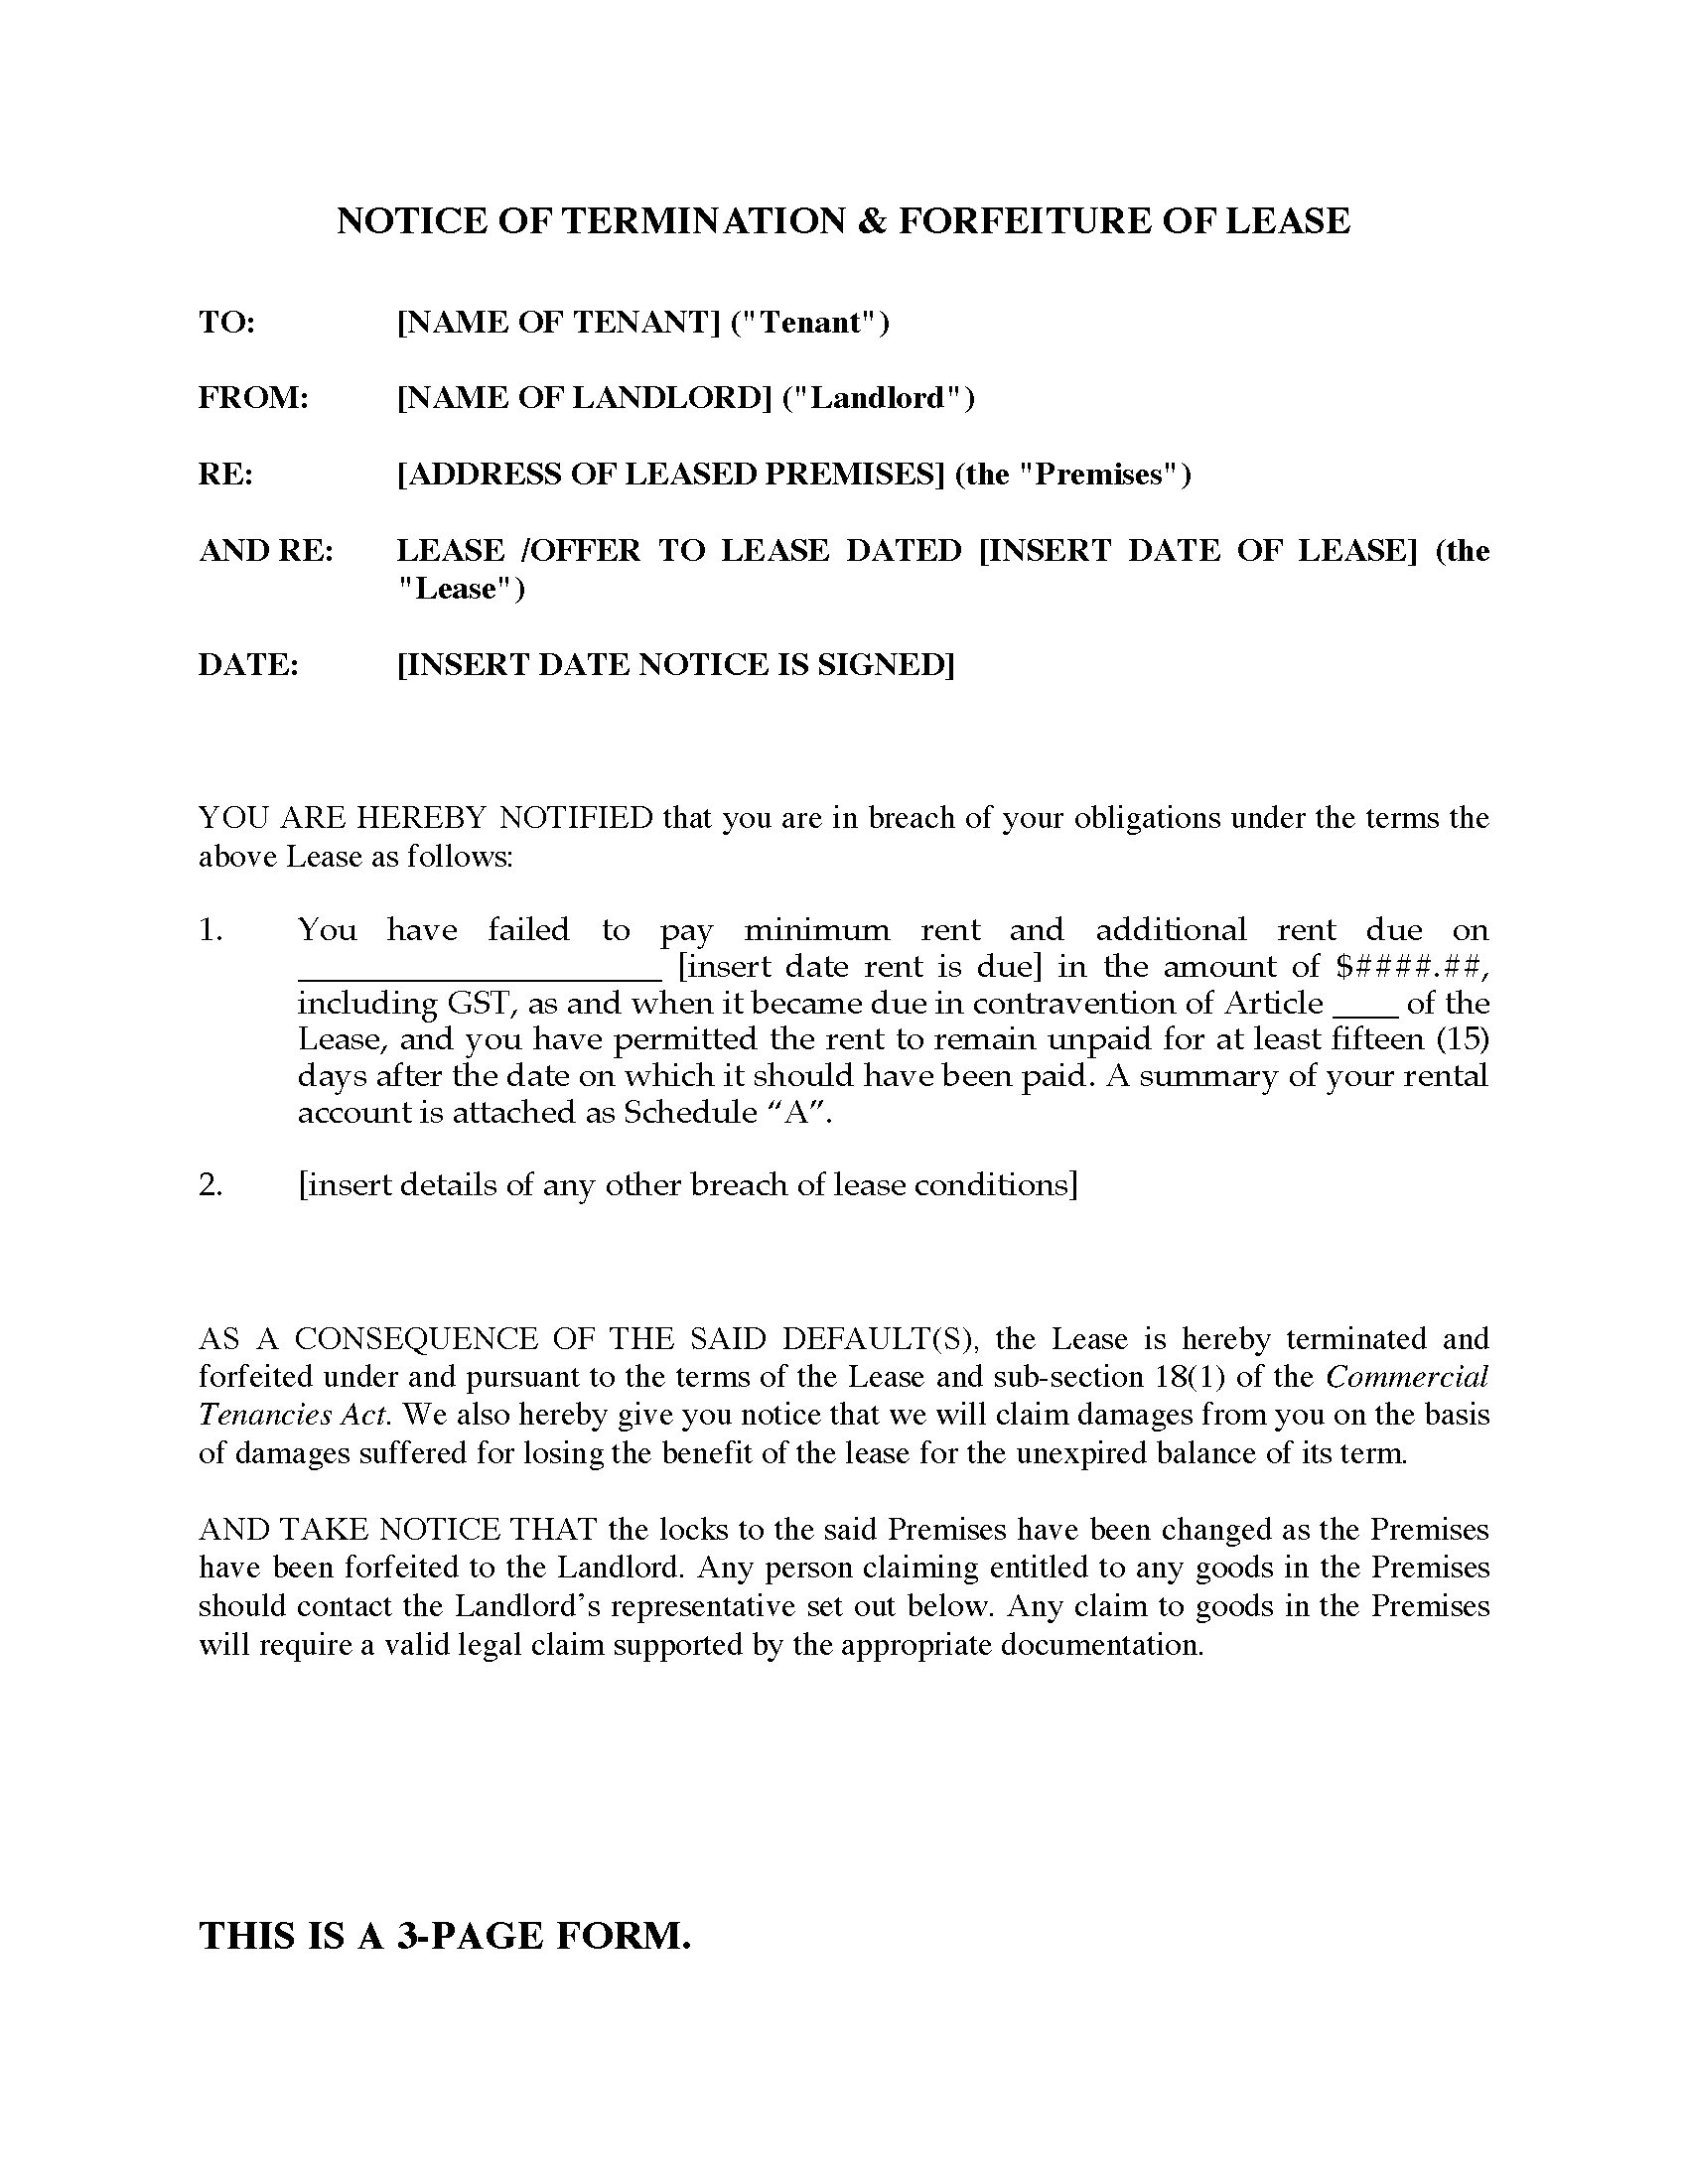 Forfeiture Notice Template Ontario Notice Of Termination and forfeiture Of Lease